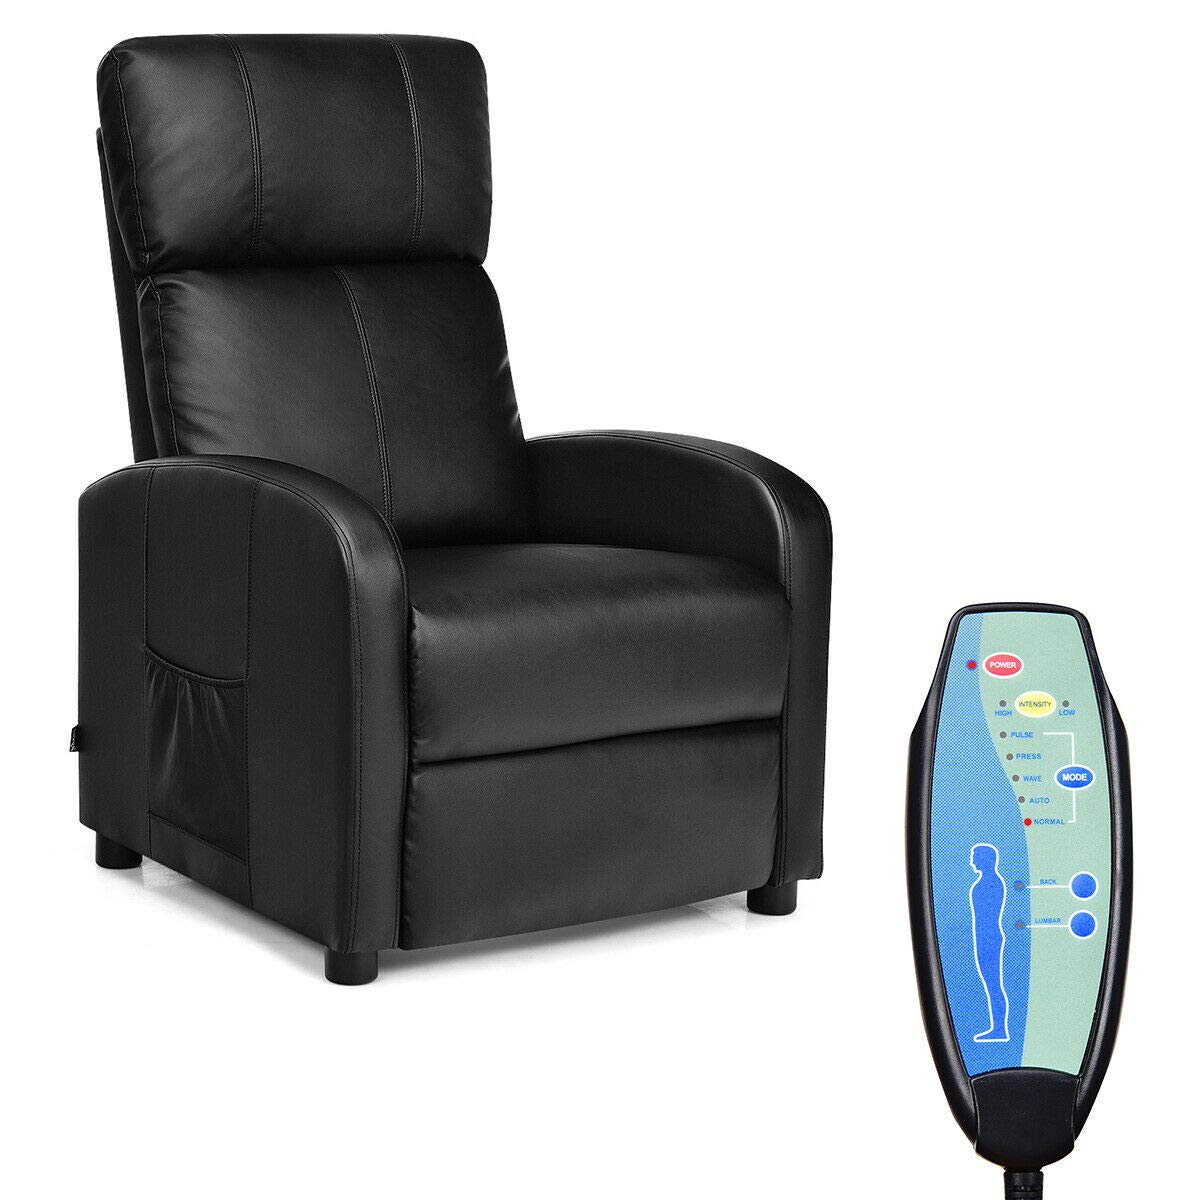 Giantex Massage Recliner Adjustable Chair Single Sofa, Padded Seat Cushion and Backrest, PU Leather, Remote Control, Home Theater Seating, Leisure Lounge Chaise, Living Room Furniture Recliner (Black) by Giantex